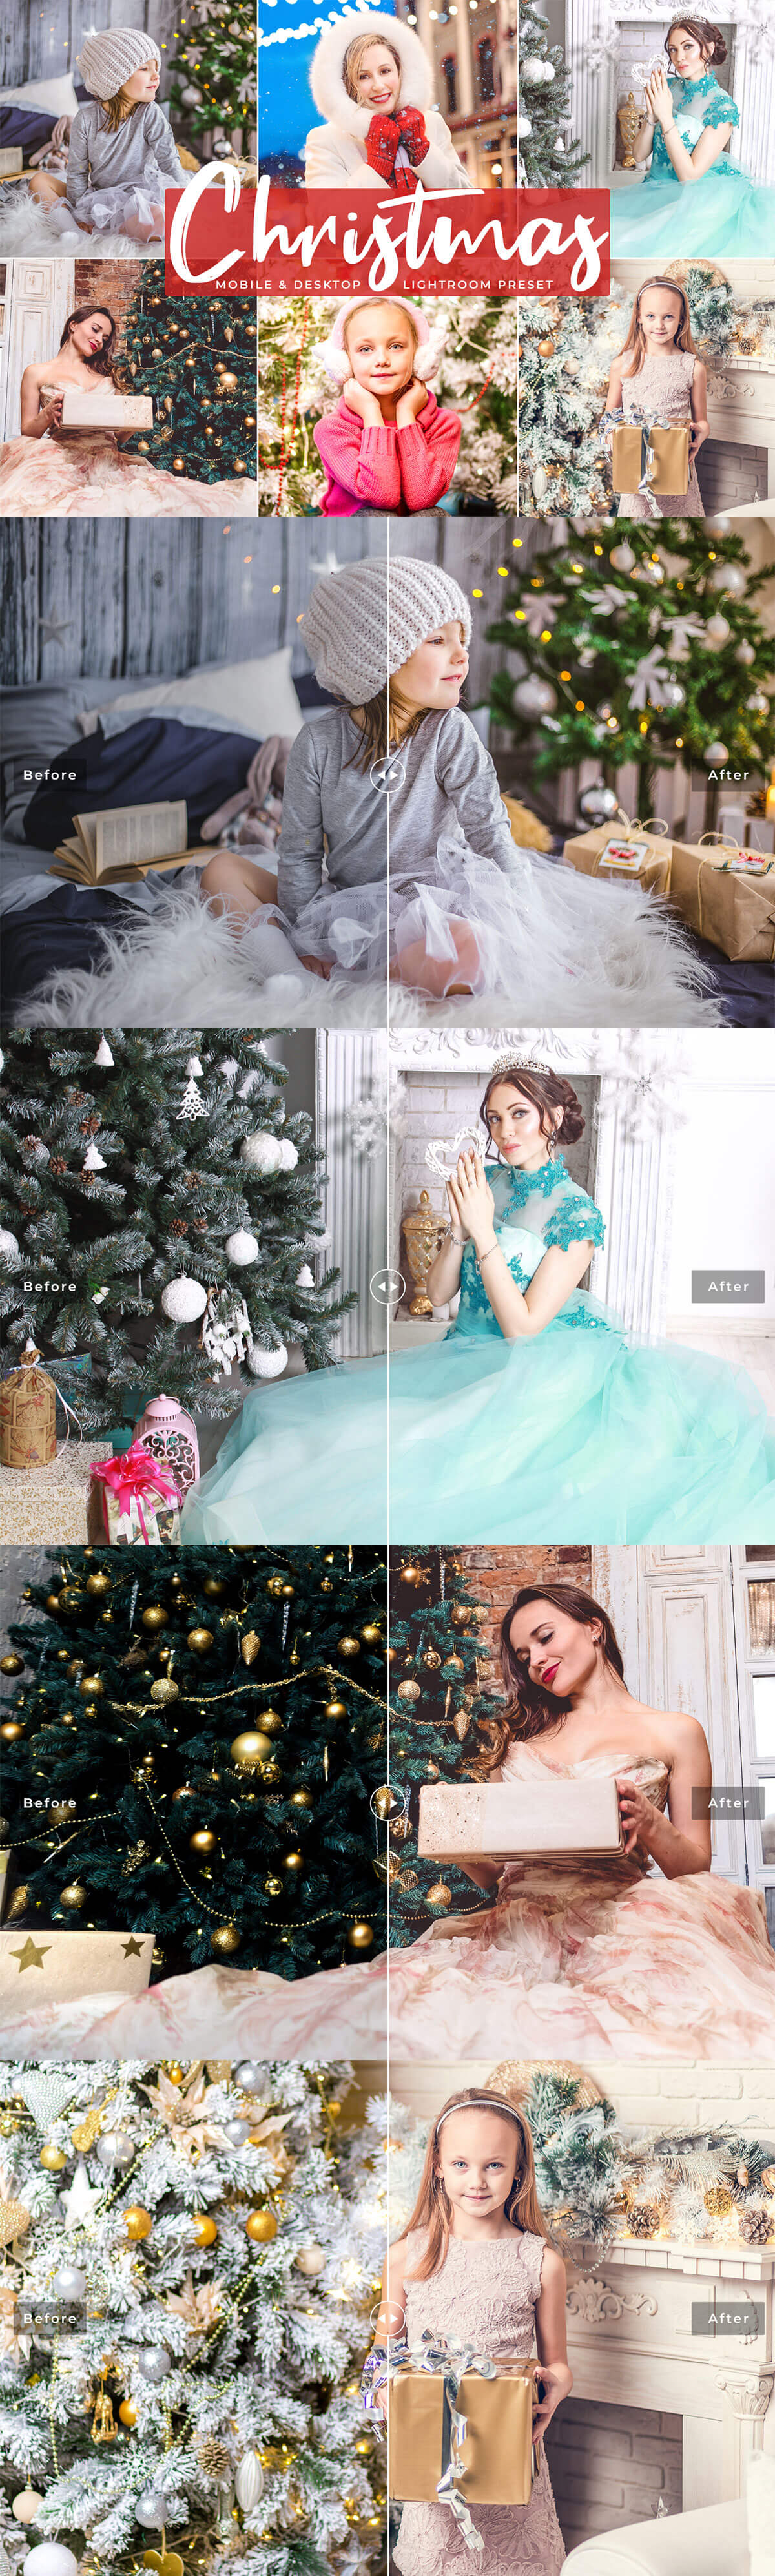 Free Christmas Mobile Lightroom Presets